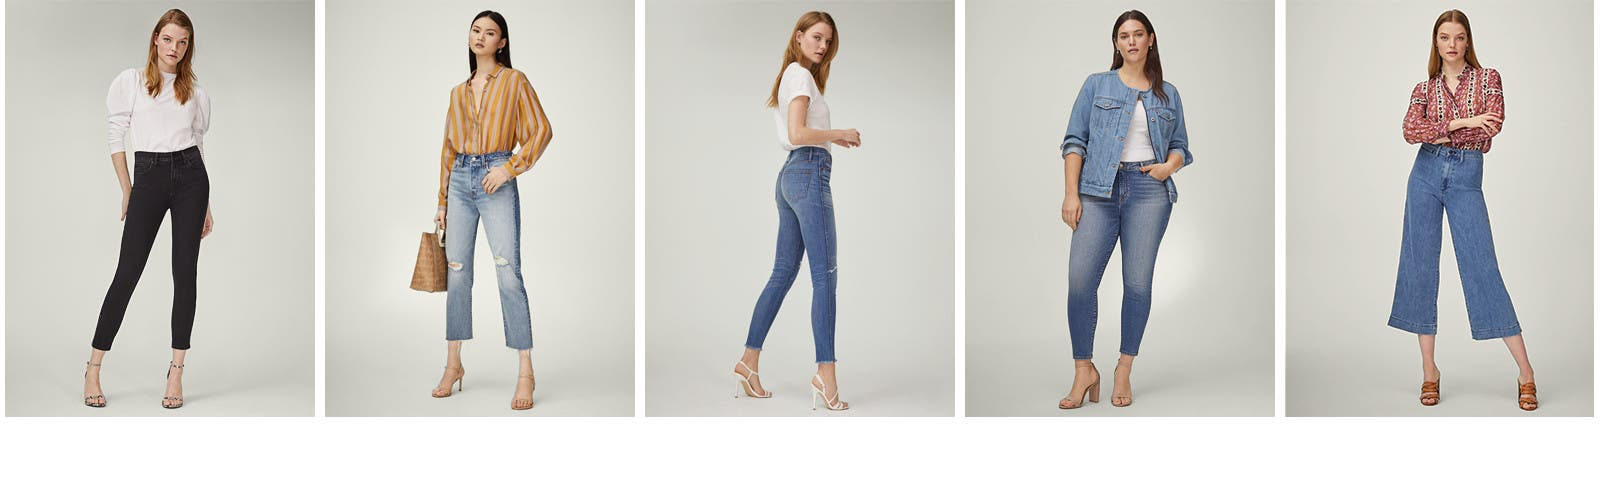 Womens's Jeans & Denim.